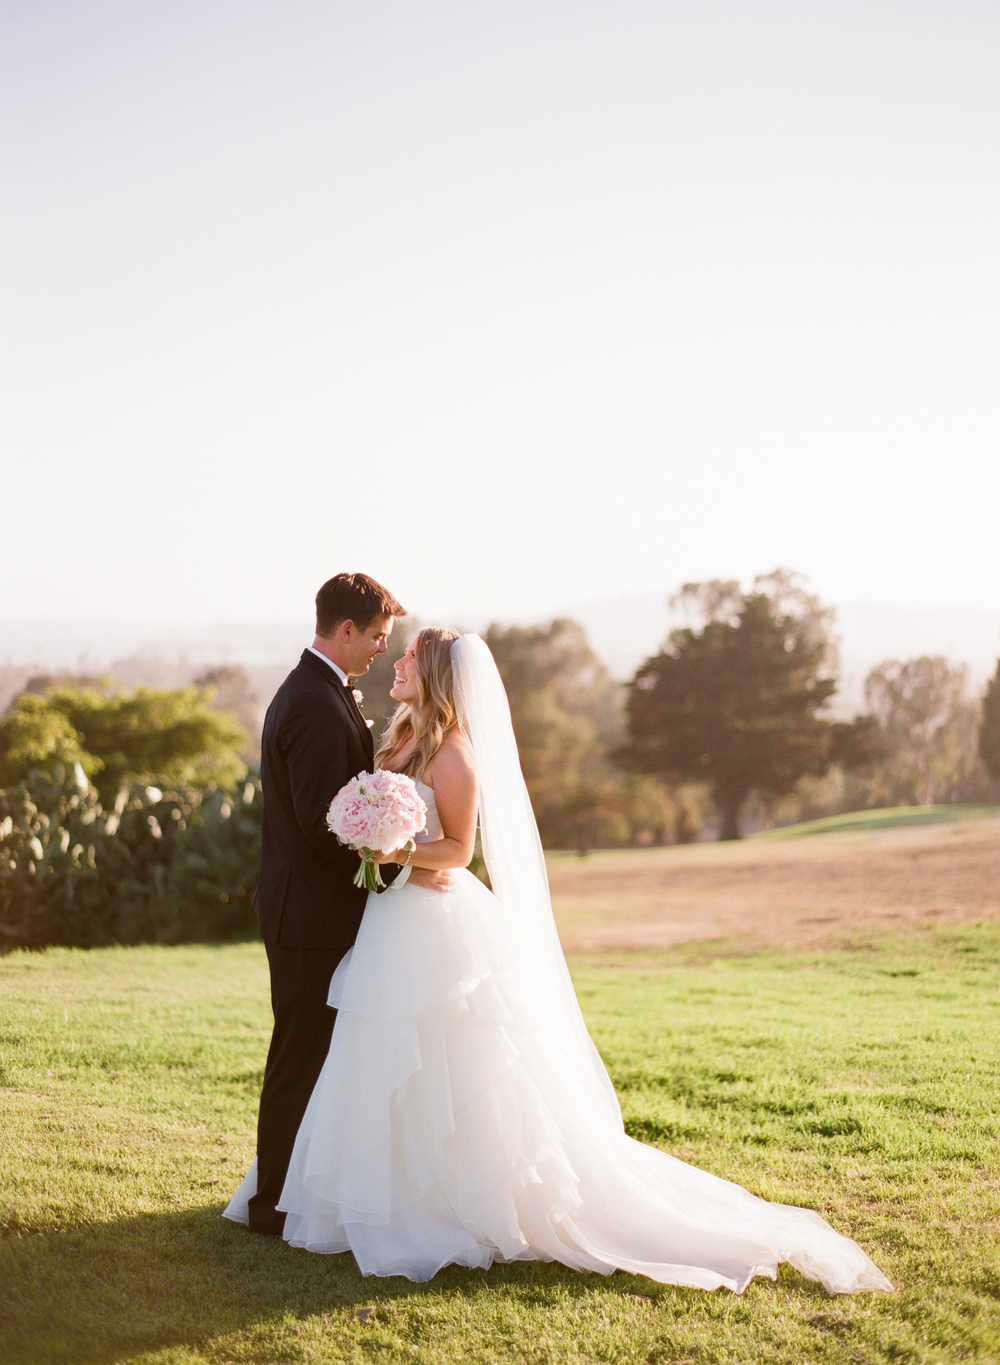 magnoliaeventdesign.com | A Montecito Country Club Wedding Photographed by Michael and Anna Costa | Magnolia Event Design | Santa Barbara Wedding Planning and Design